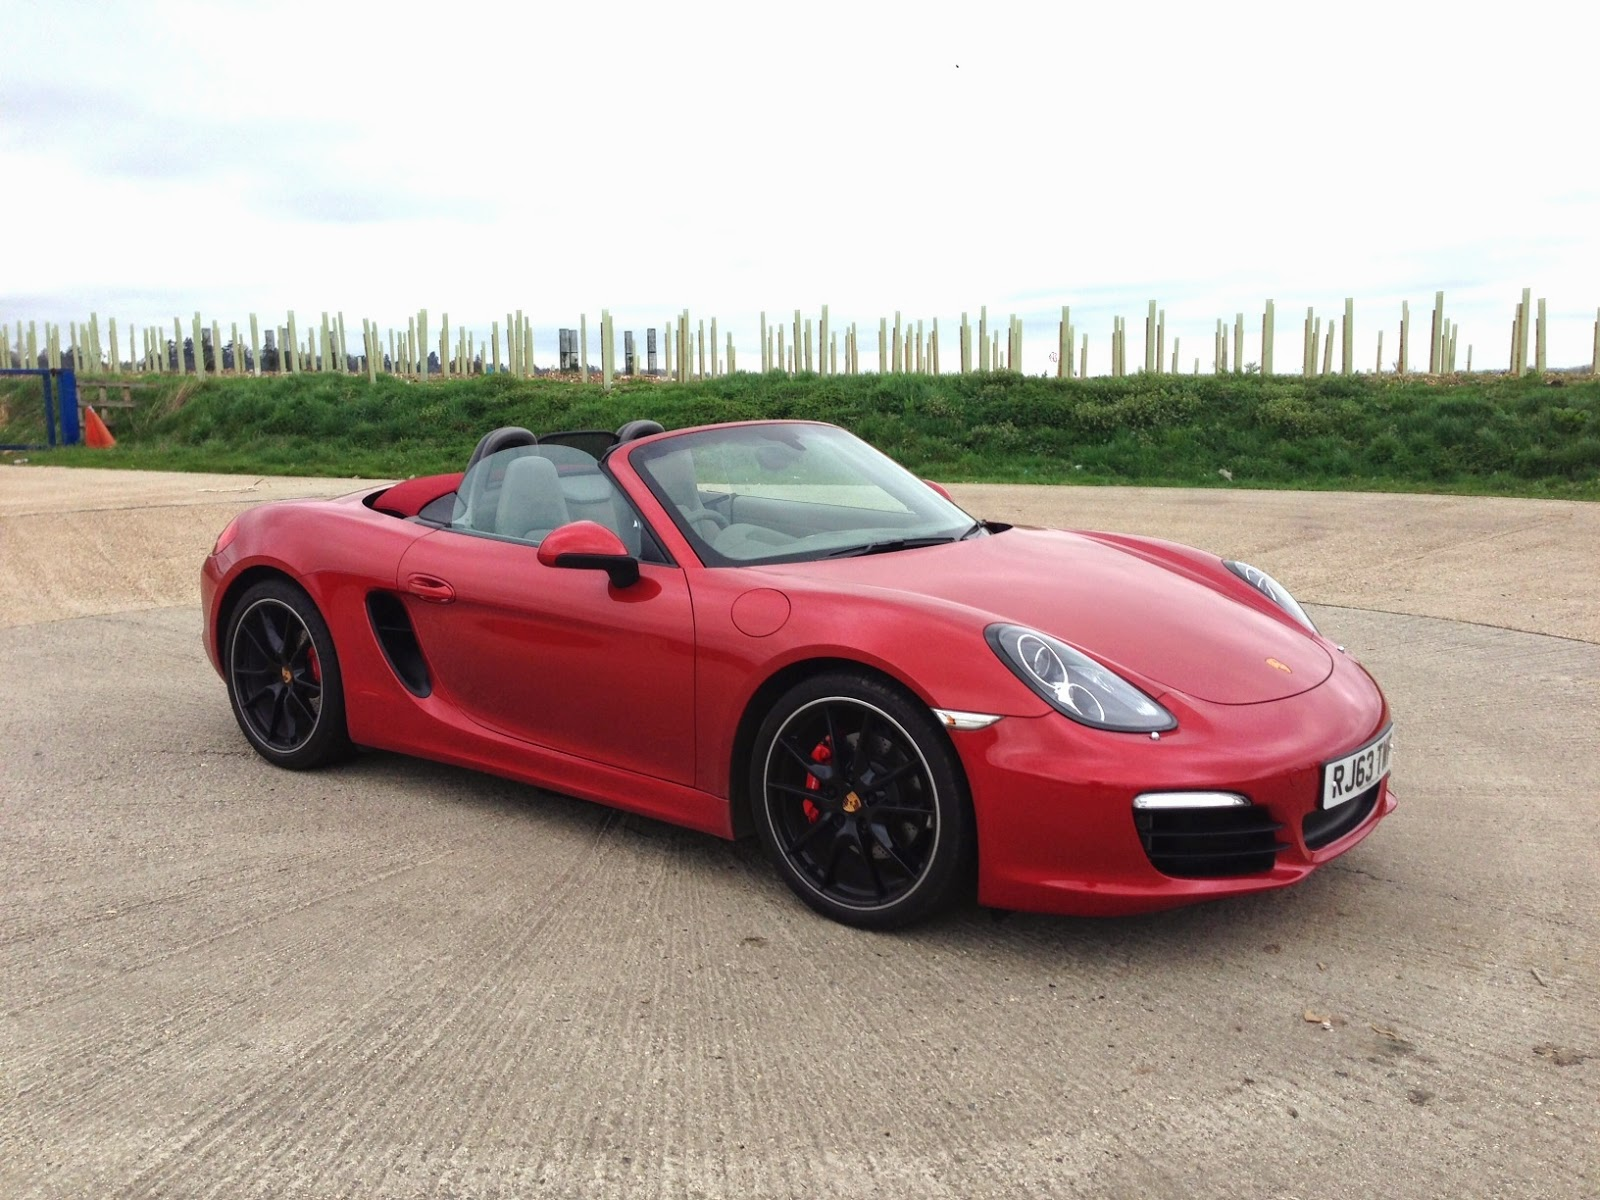 2014 porsche boxster s review the crittenden automotive library. Black Bedroom Furniture Sets. Home Design Ideas